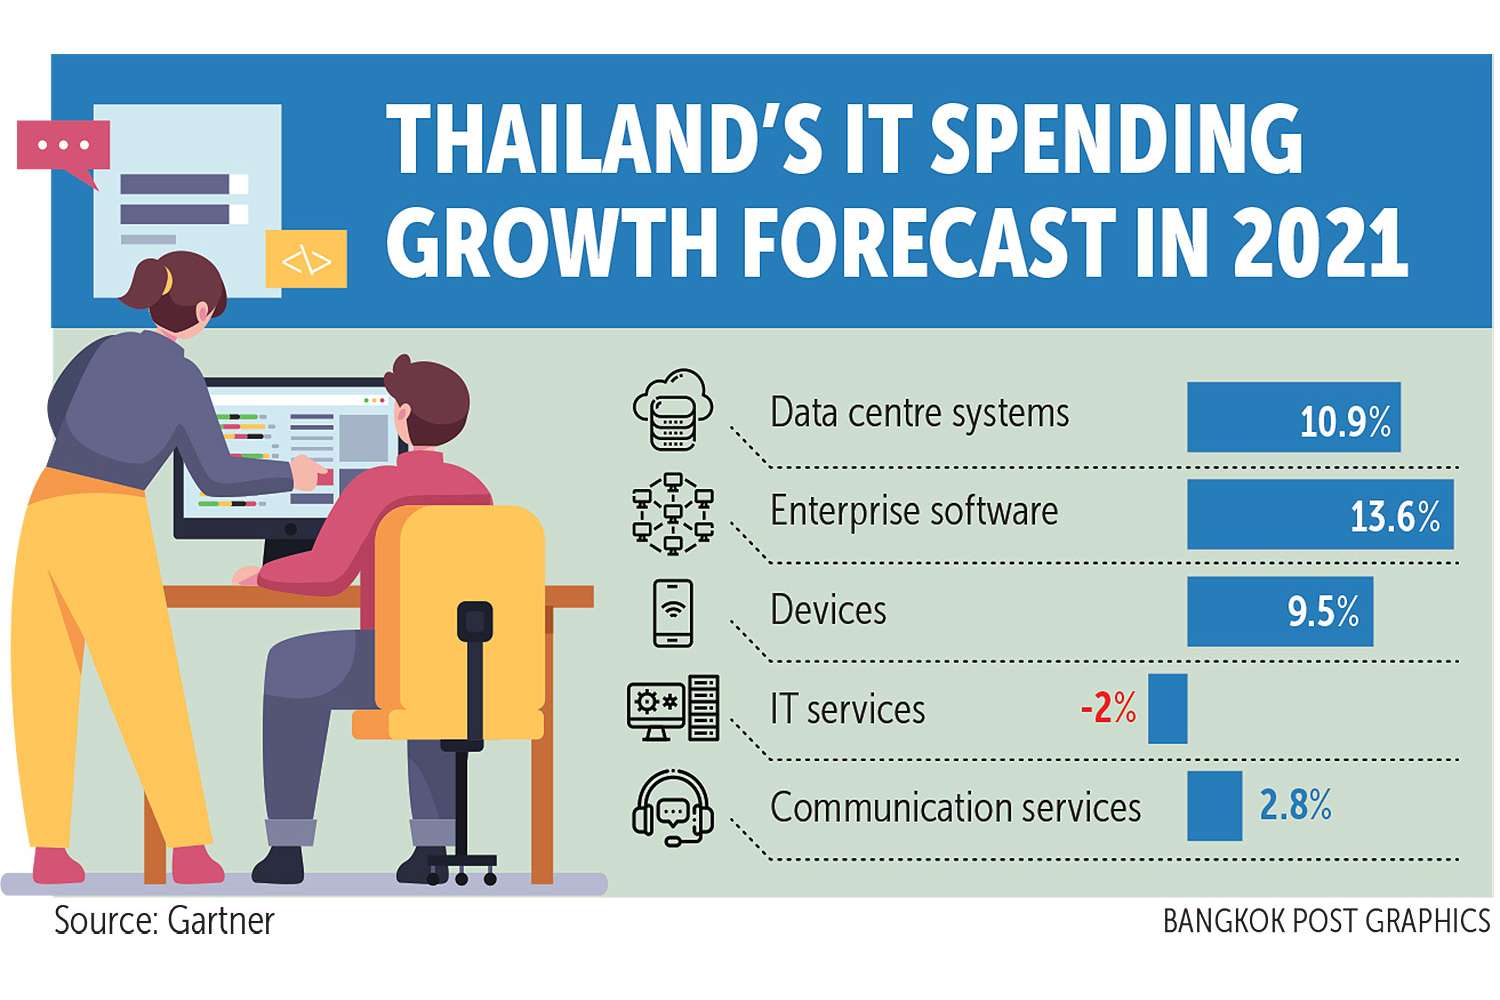 Gartner predicts 5% IT spending growth in Thailand